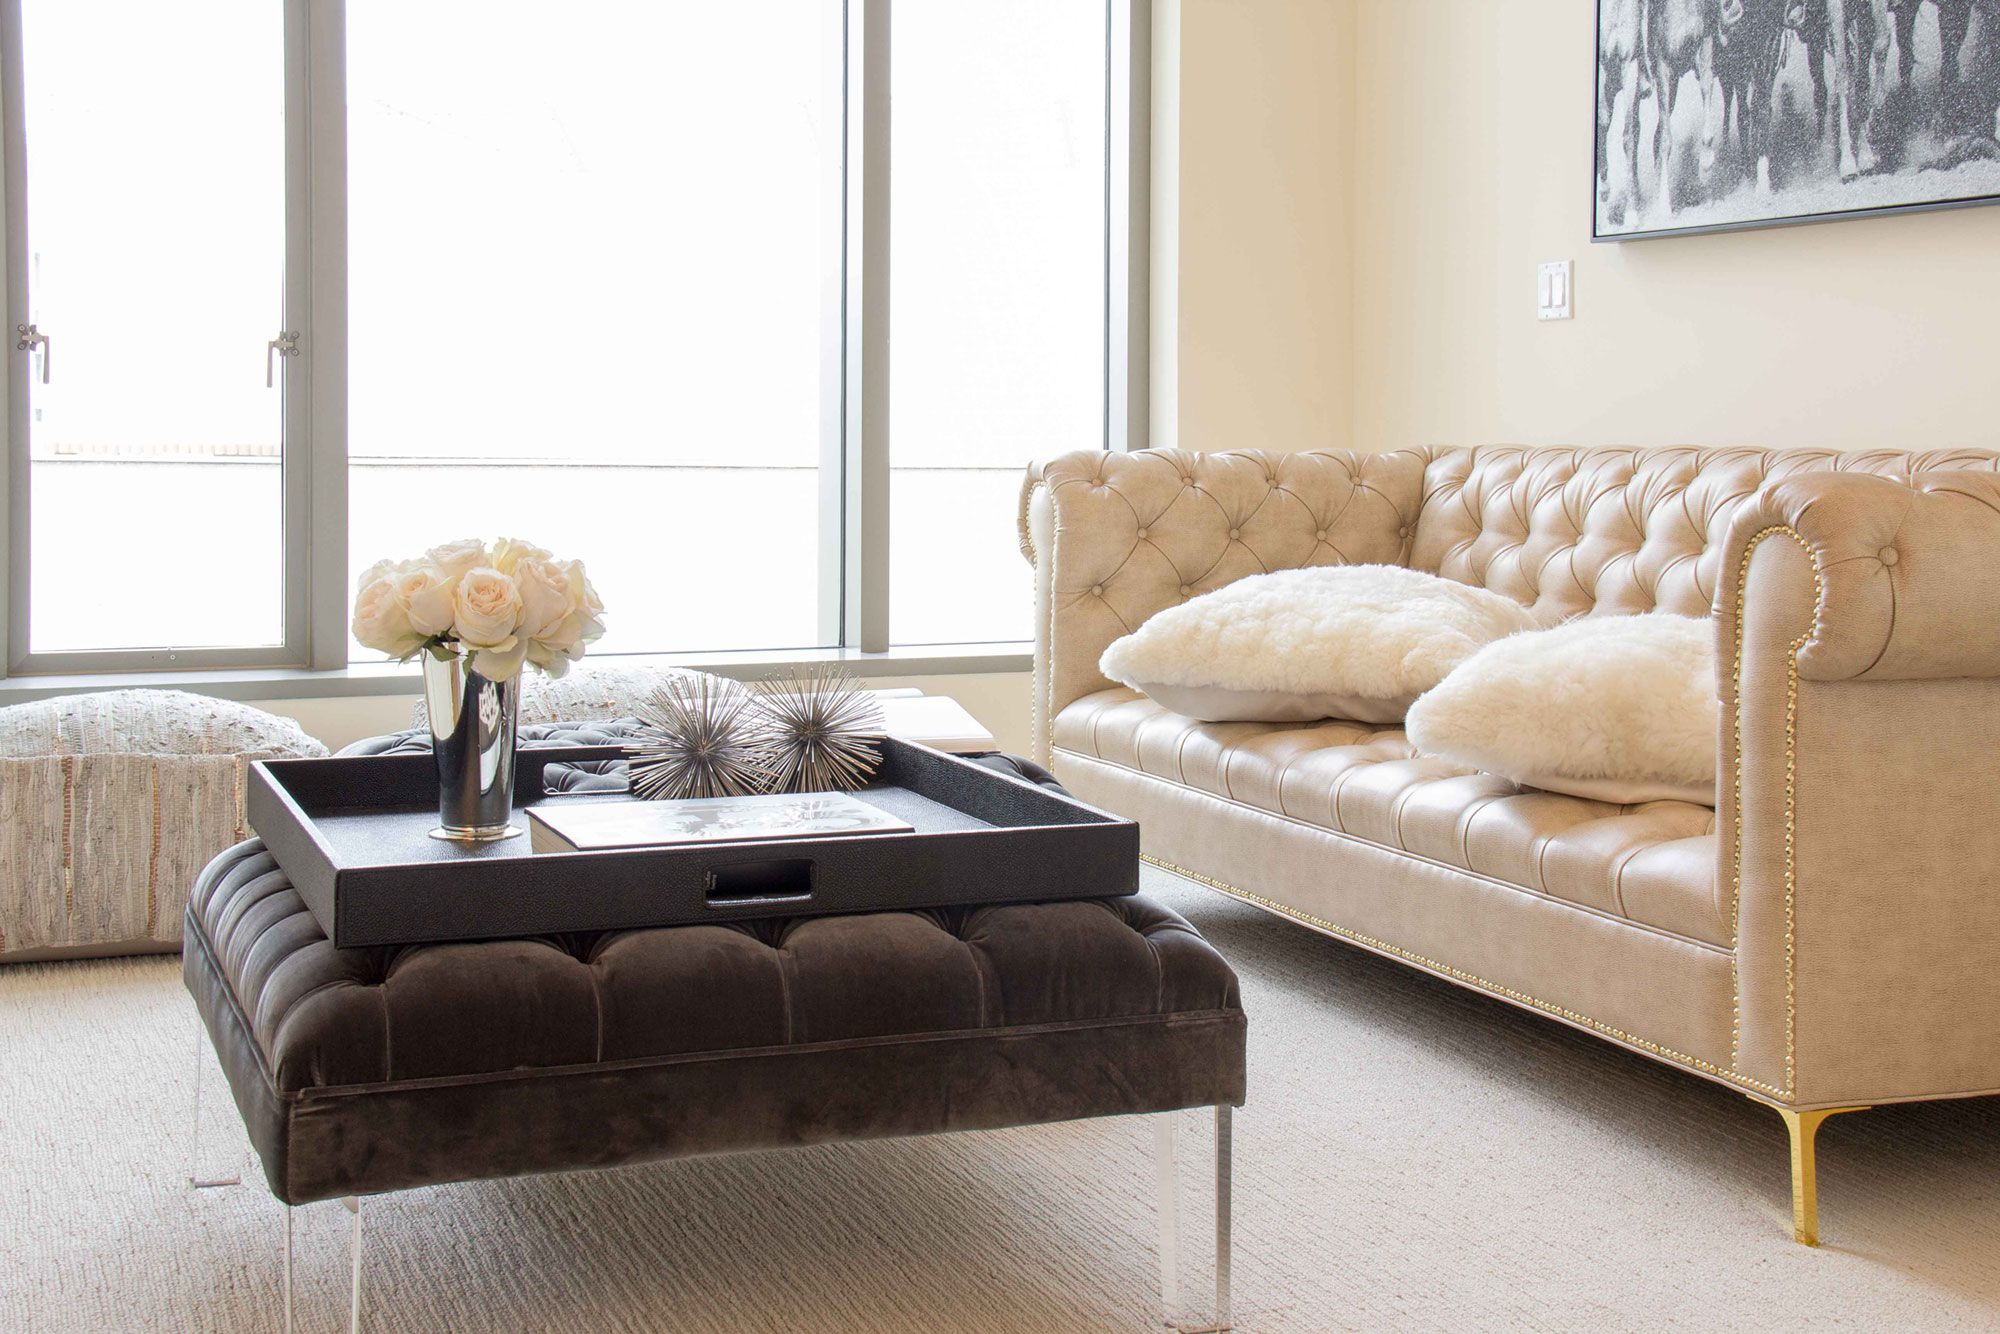 Luxury-Penthouse-in-The-Carlyle-Residences-10